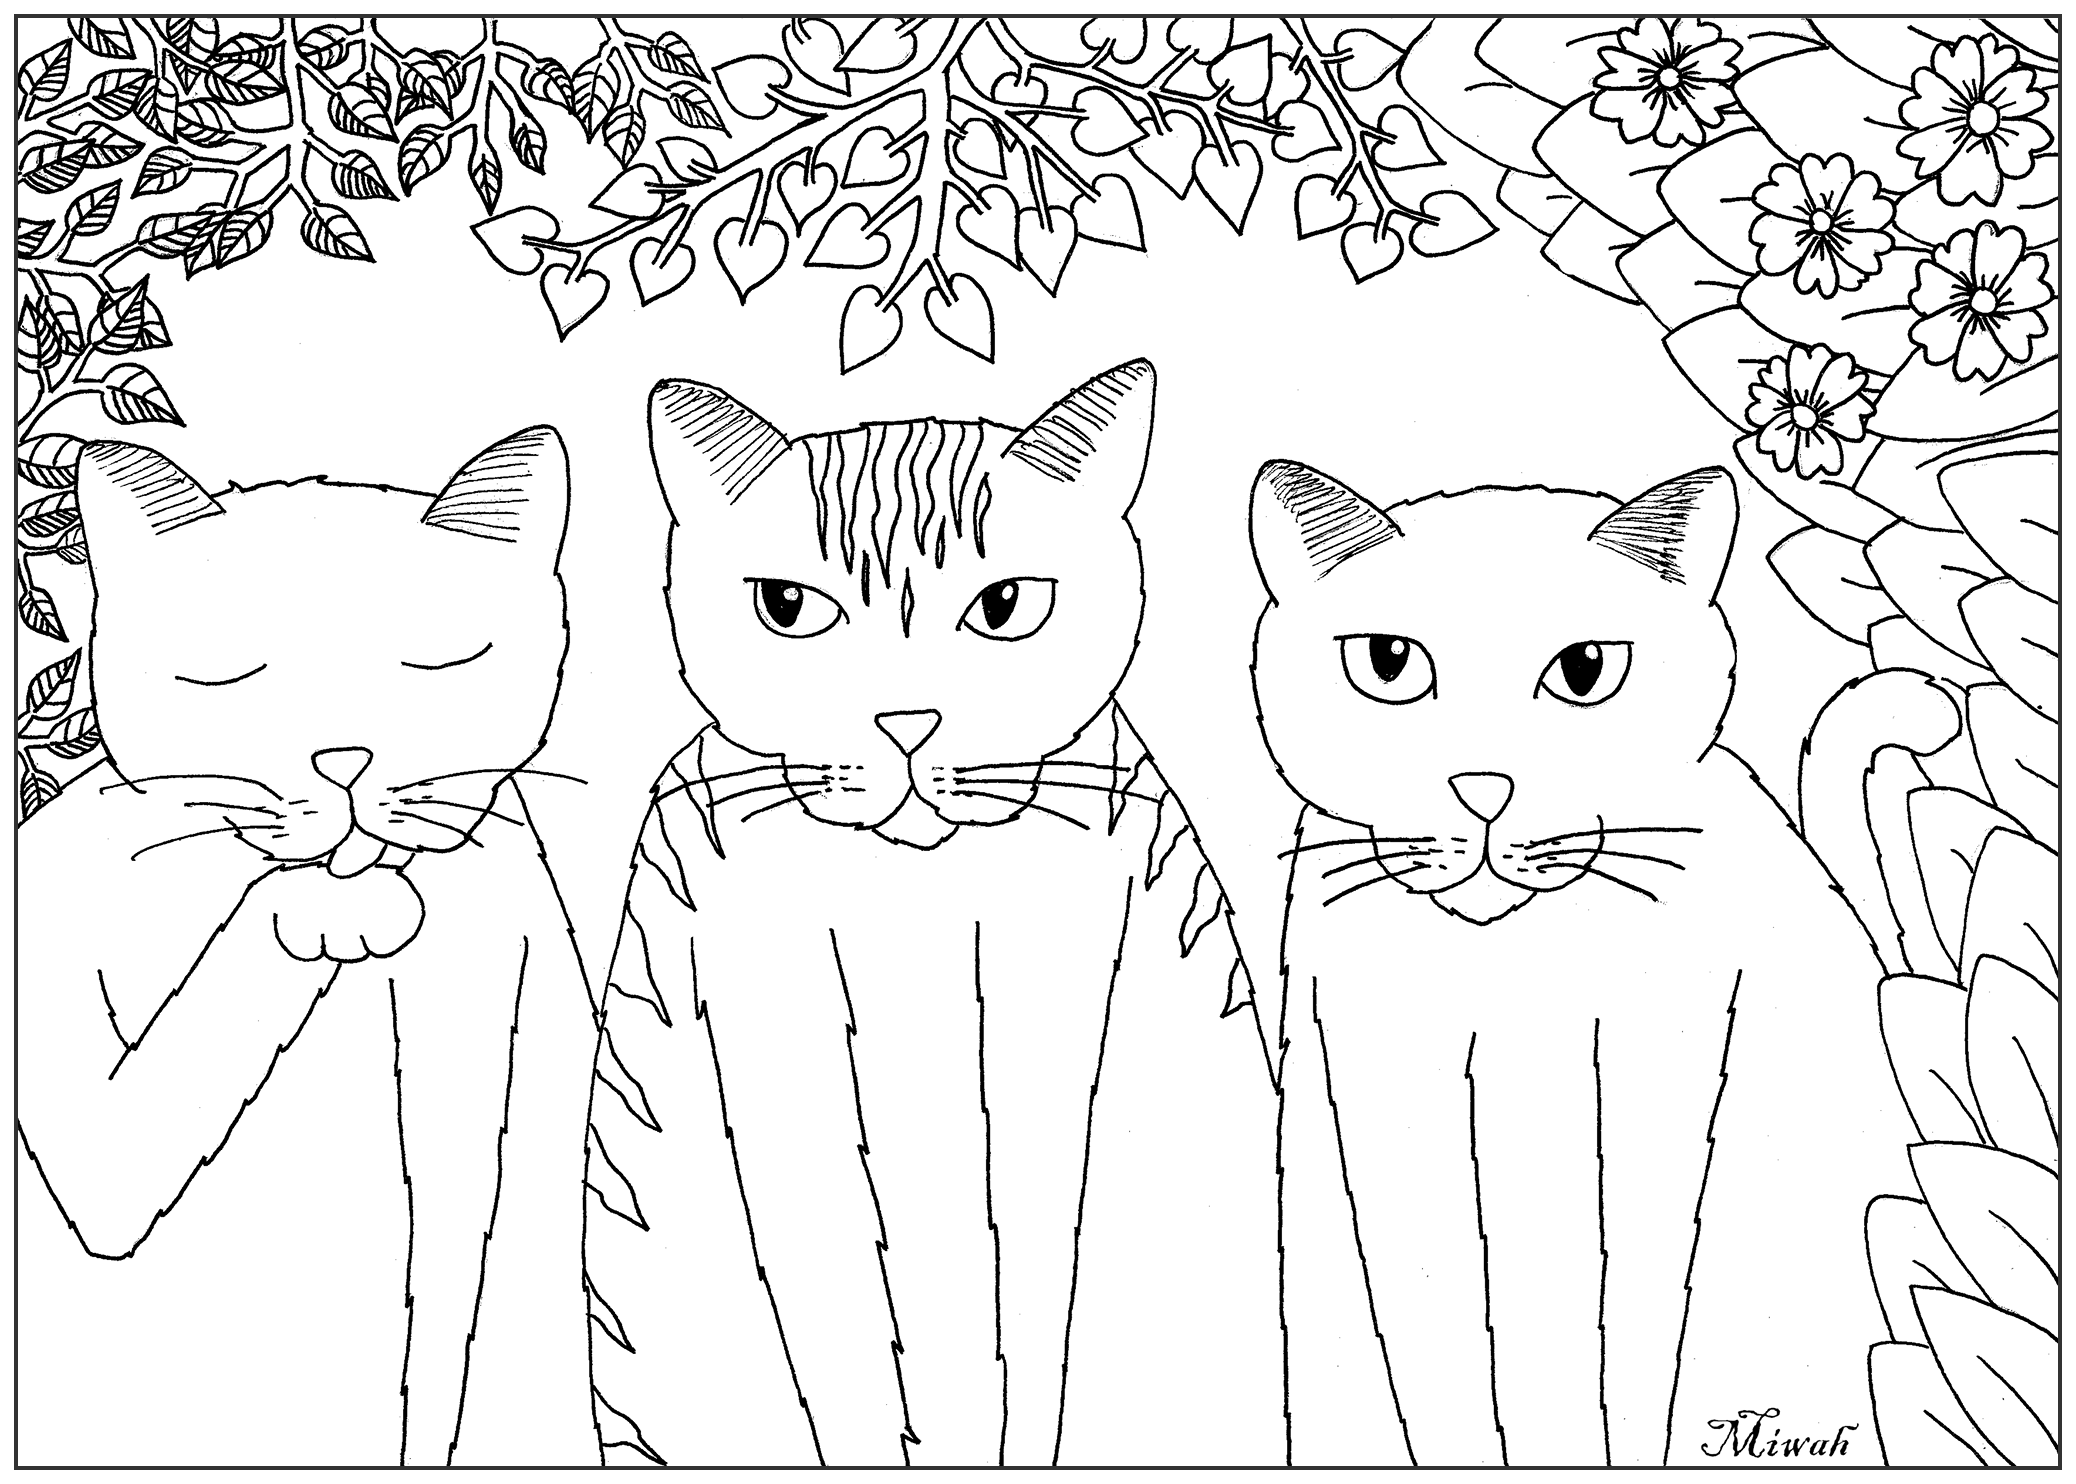 Simple Cat coloring page to download for free : Three little cats